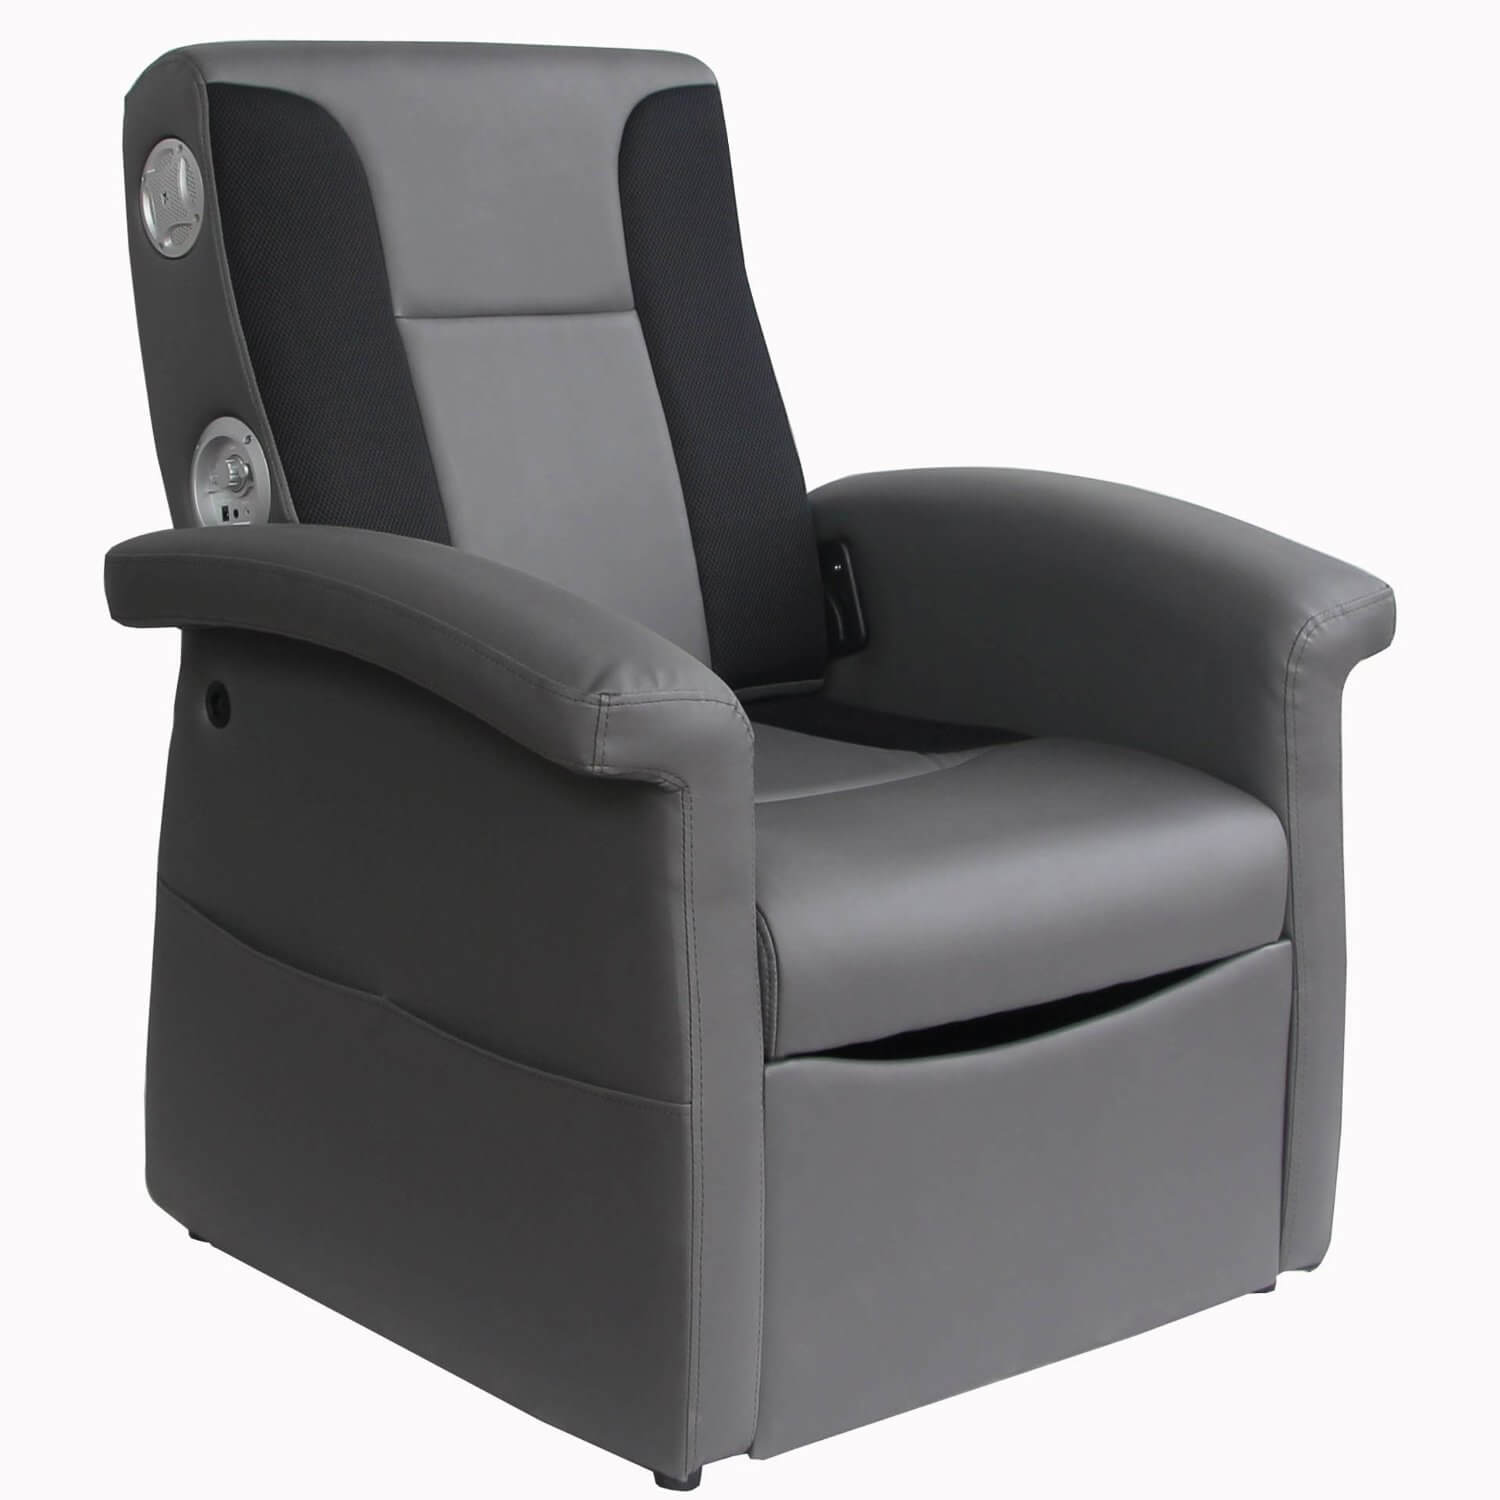 Gaiming Chair Best Gaming Chairs For Adults The Top Chair Reviews 2018